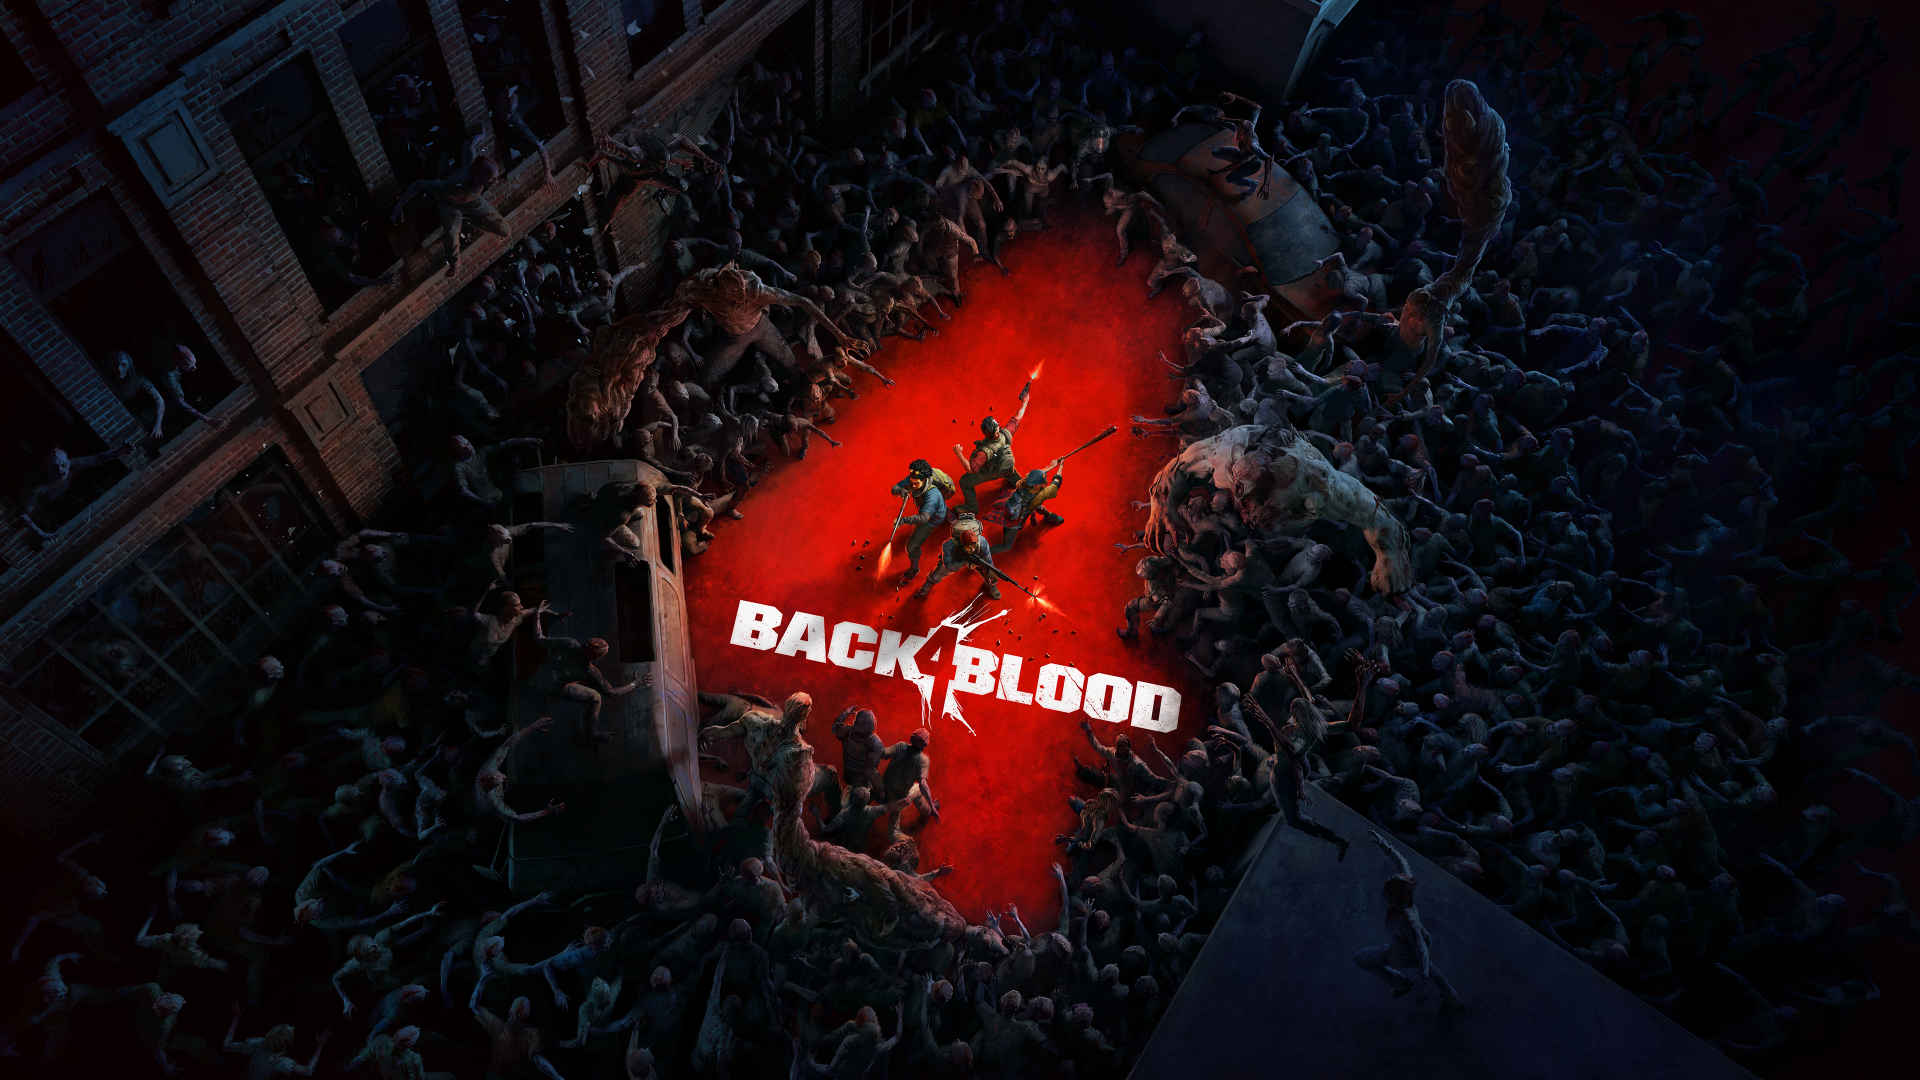 Get Ready For The Back 4 Blood Open Beta With New Trailer Showcasing the Co-op and PvP Action Beginning August 6th